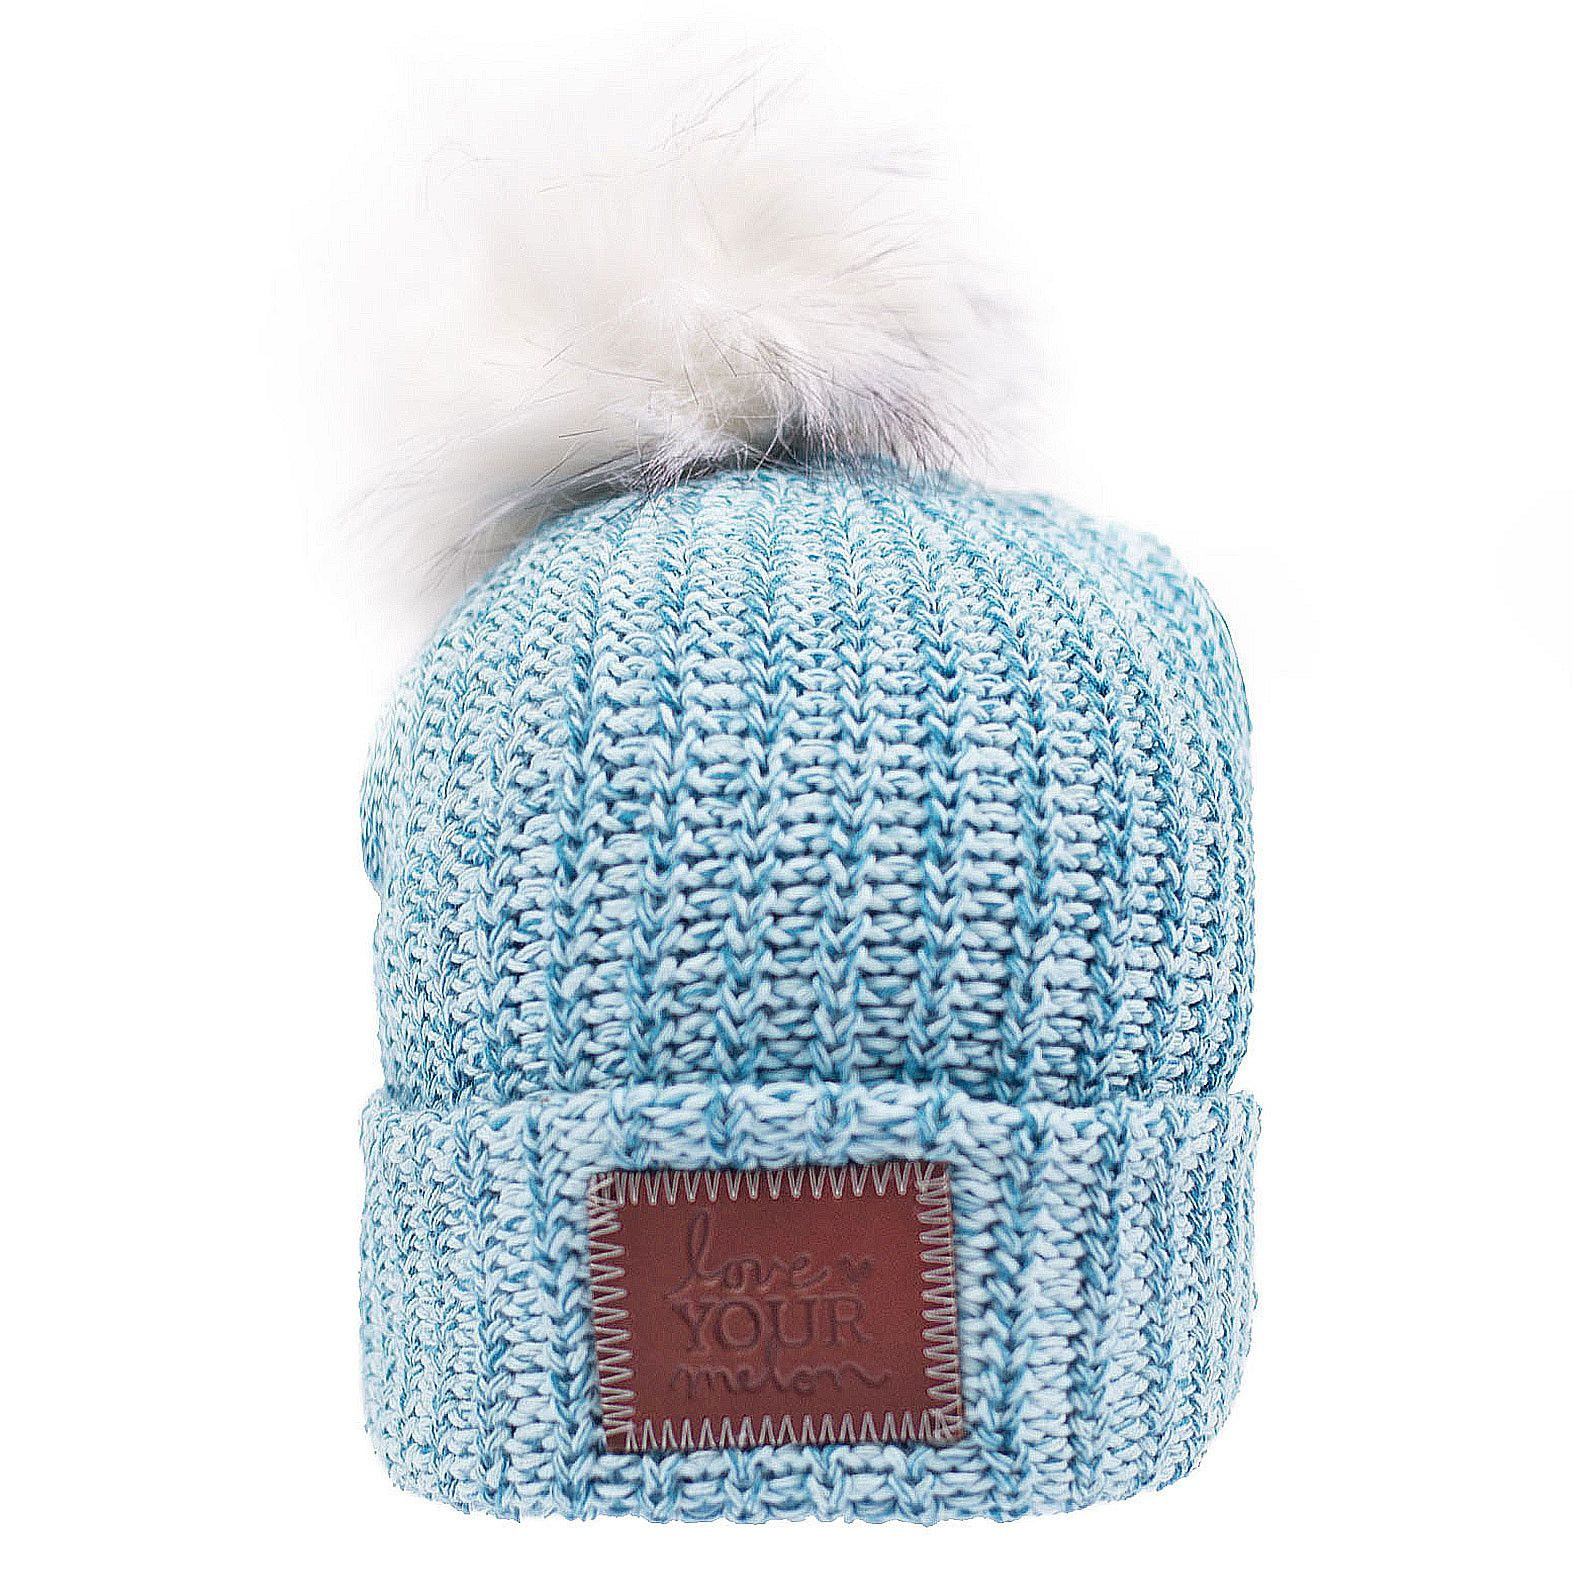 737a66104ad Light Blue and Teal Speckled Pom Beanie – Love Your Melon...love this color!